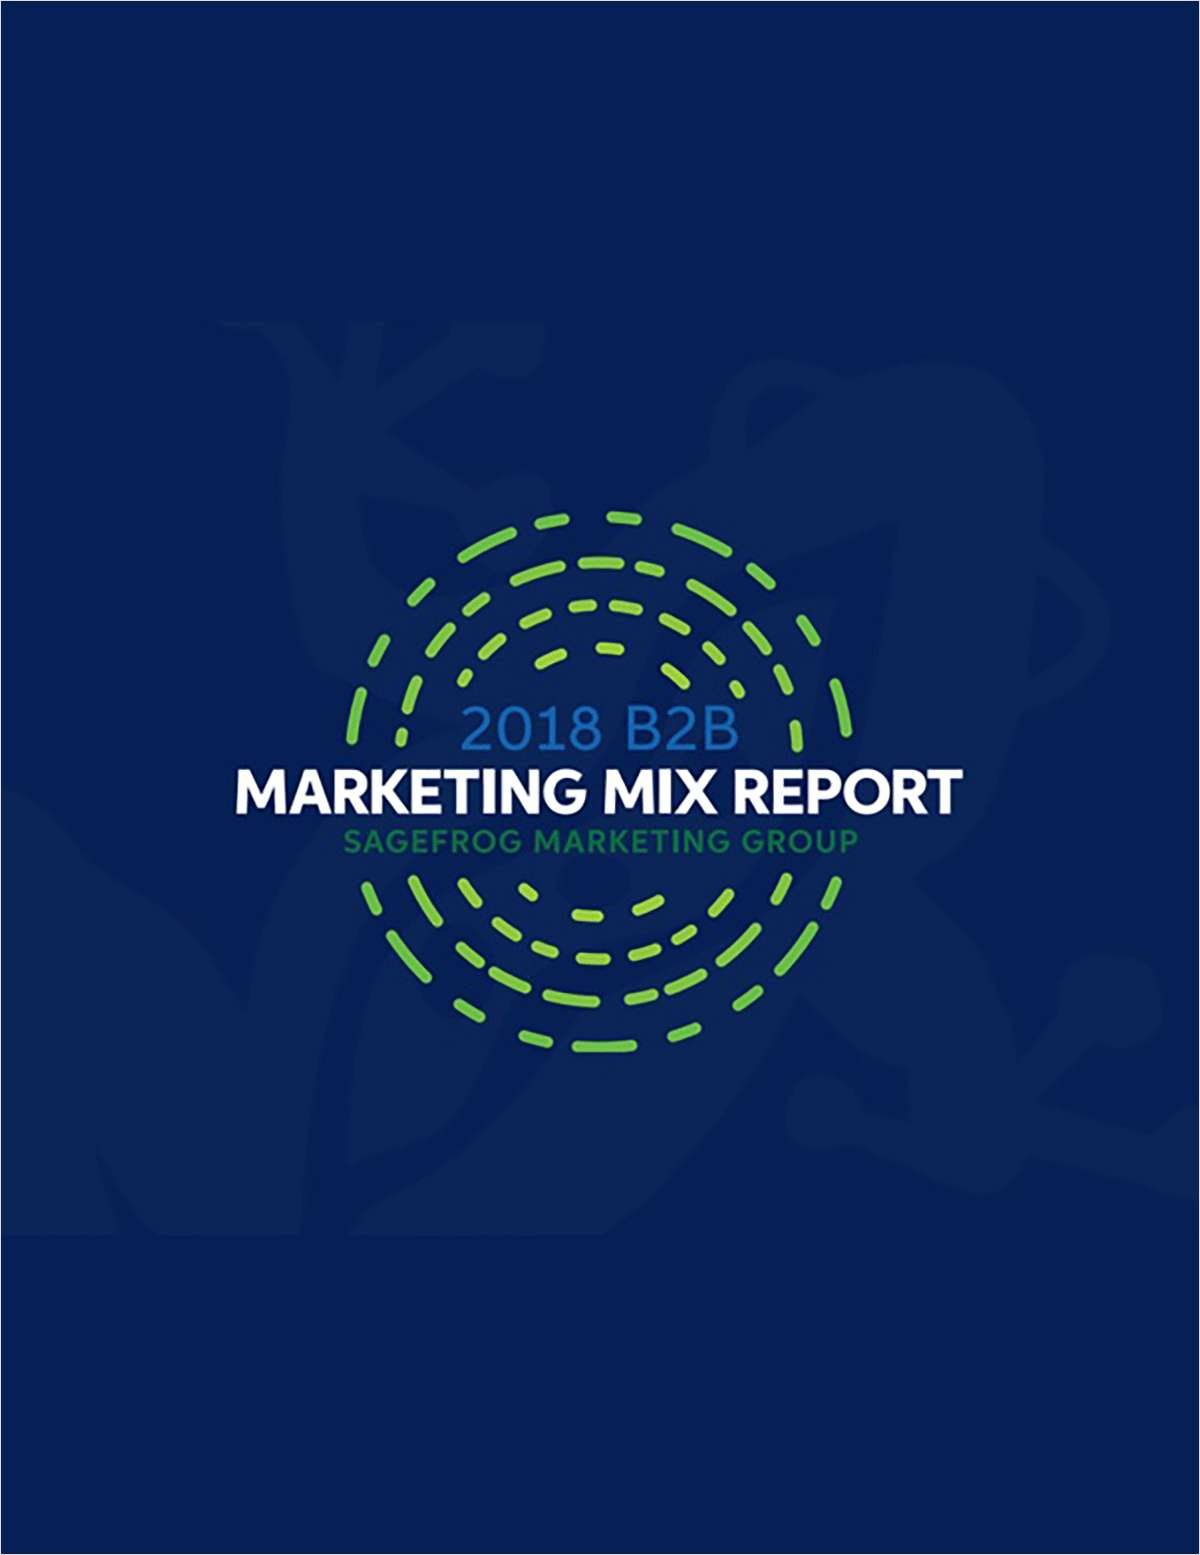 2018 B2B Marketing Mix Report